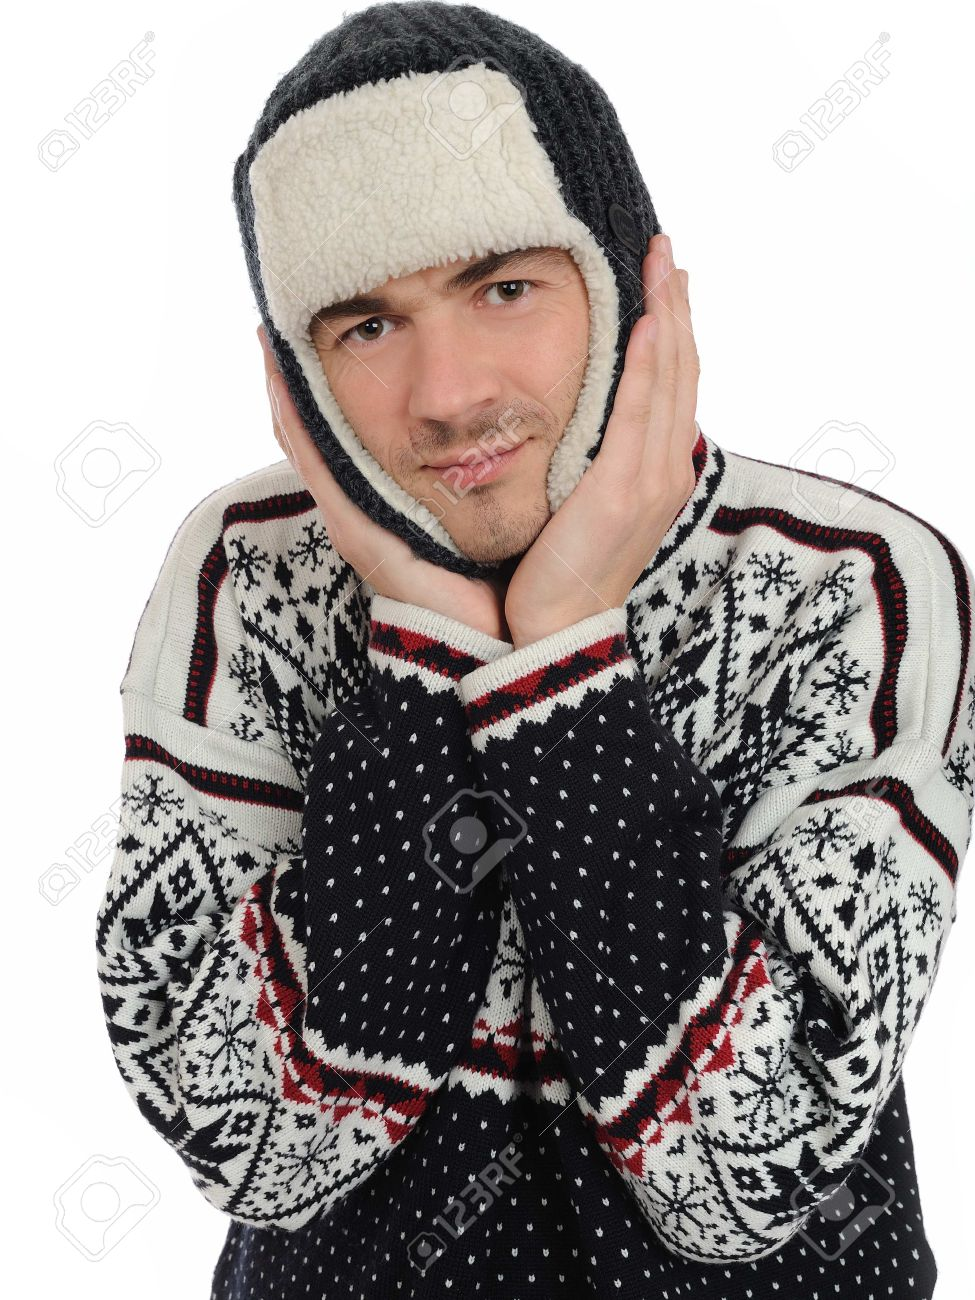 Funny winter man in warm hat and clothes. isolated on white background Stock Photo - 8328429